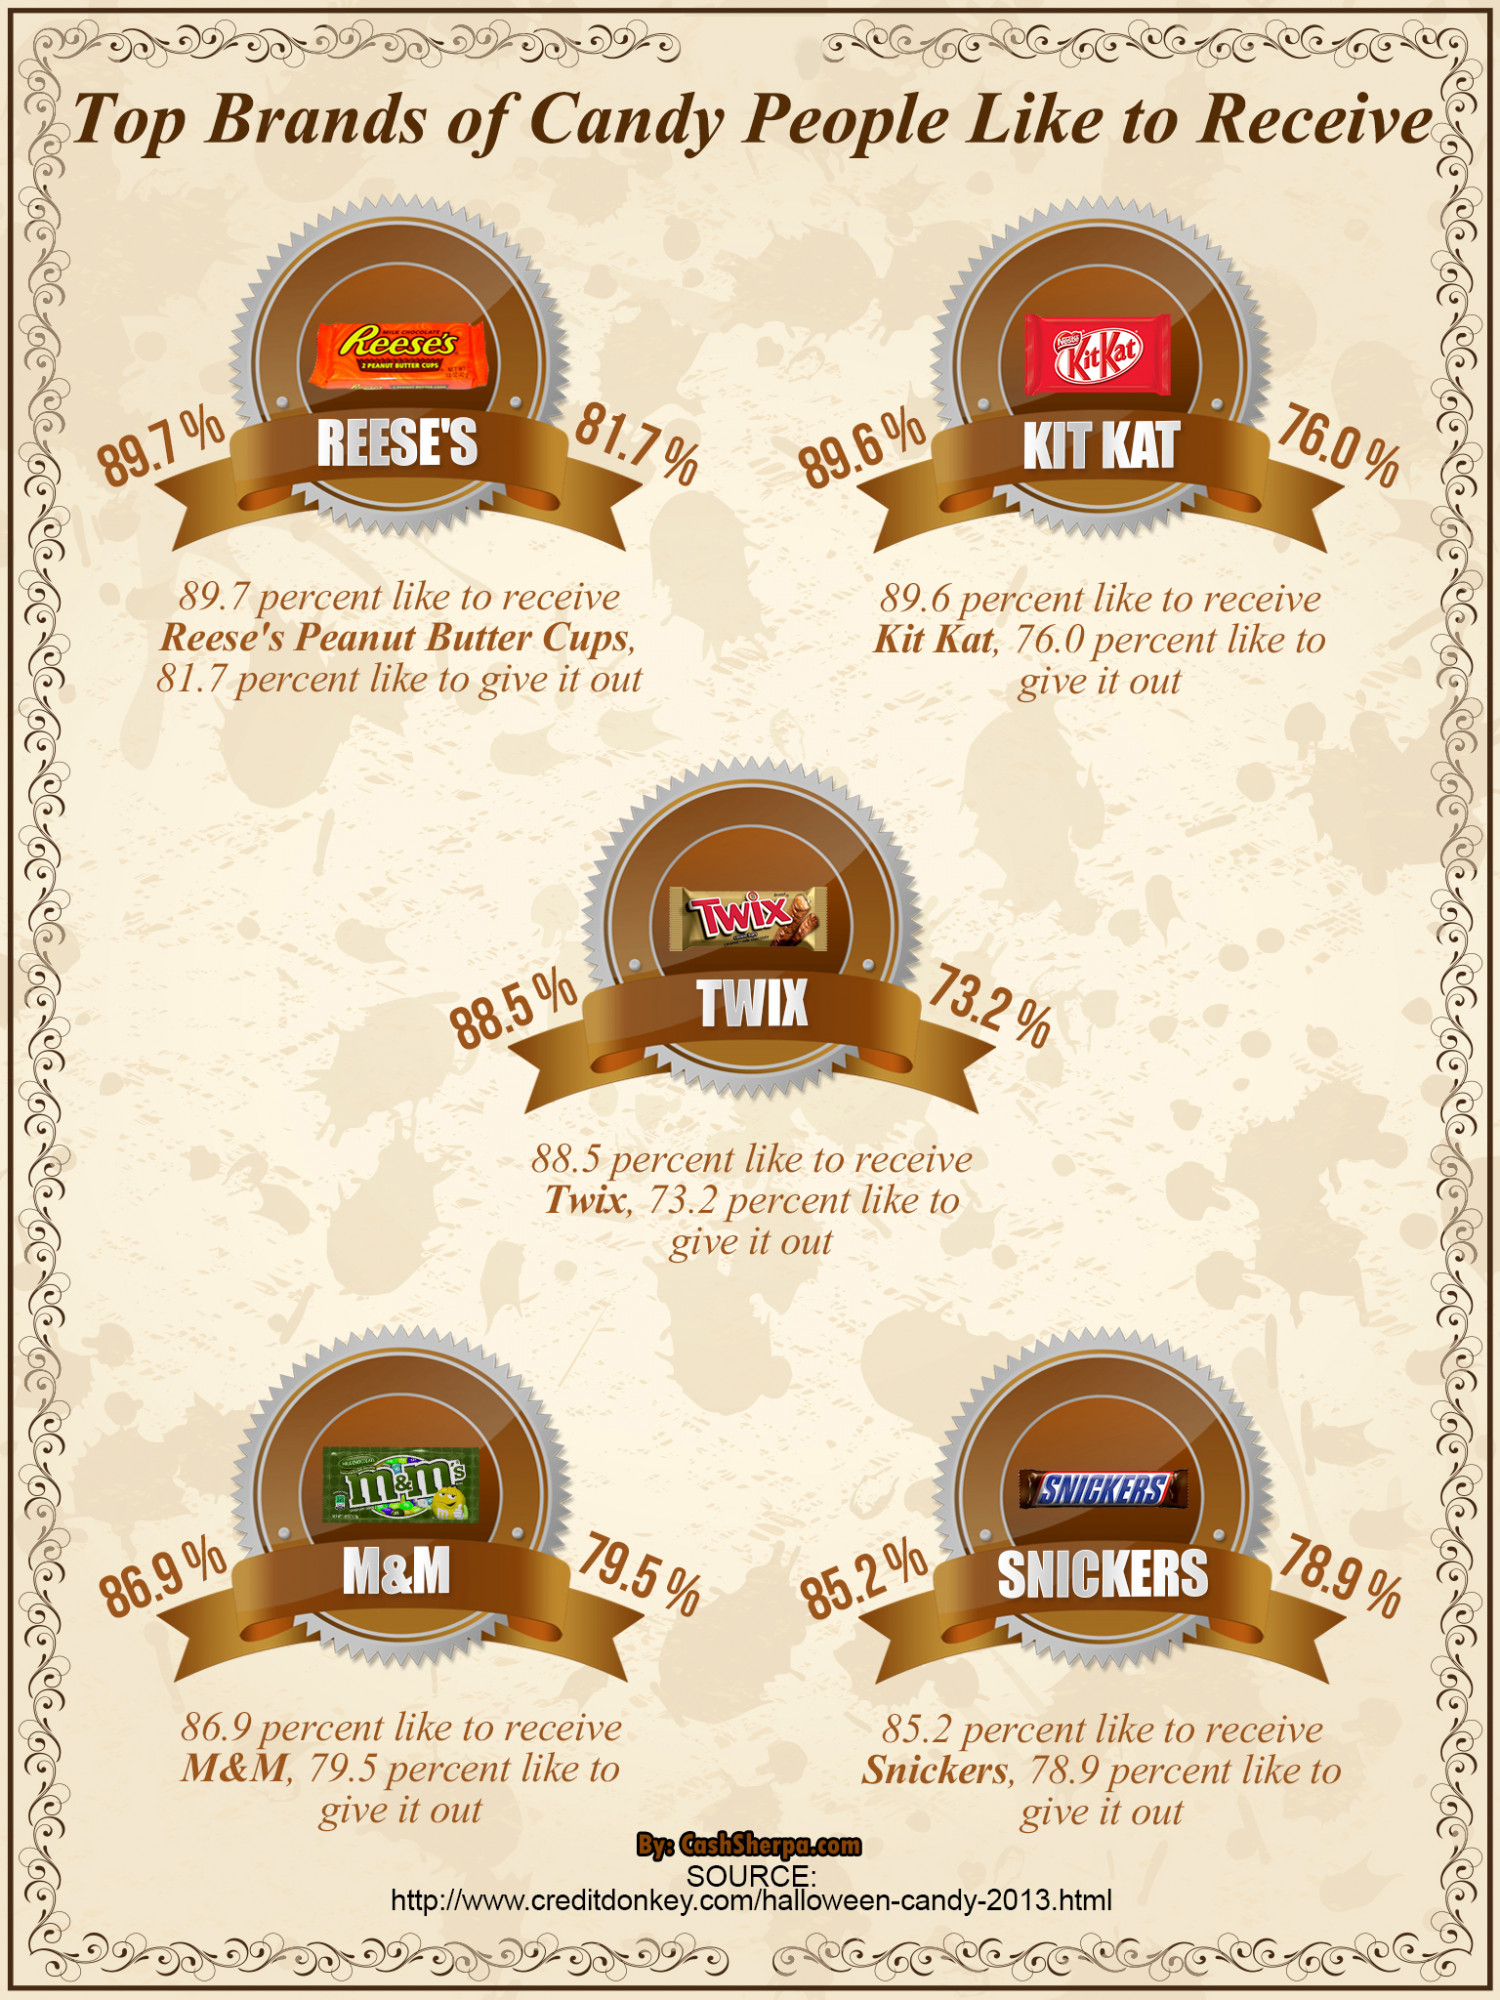 Top Brands of Candy People Like to Receive on Halloween Infographic